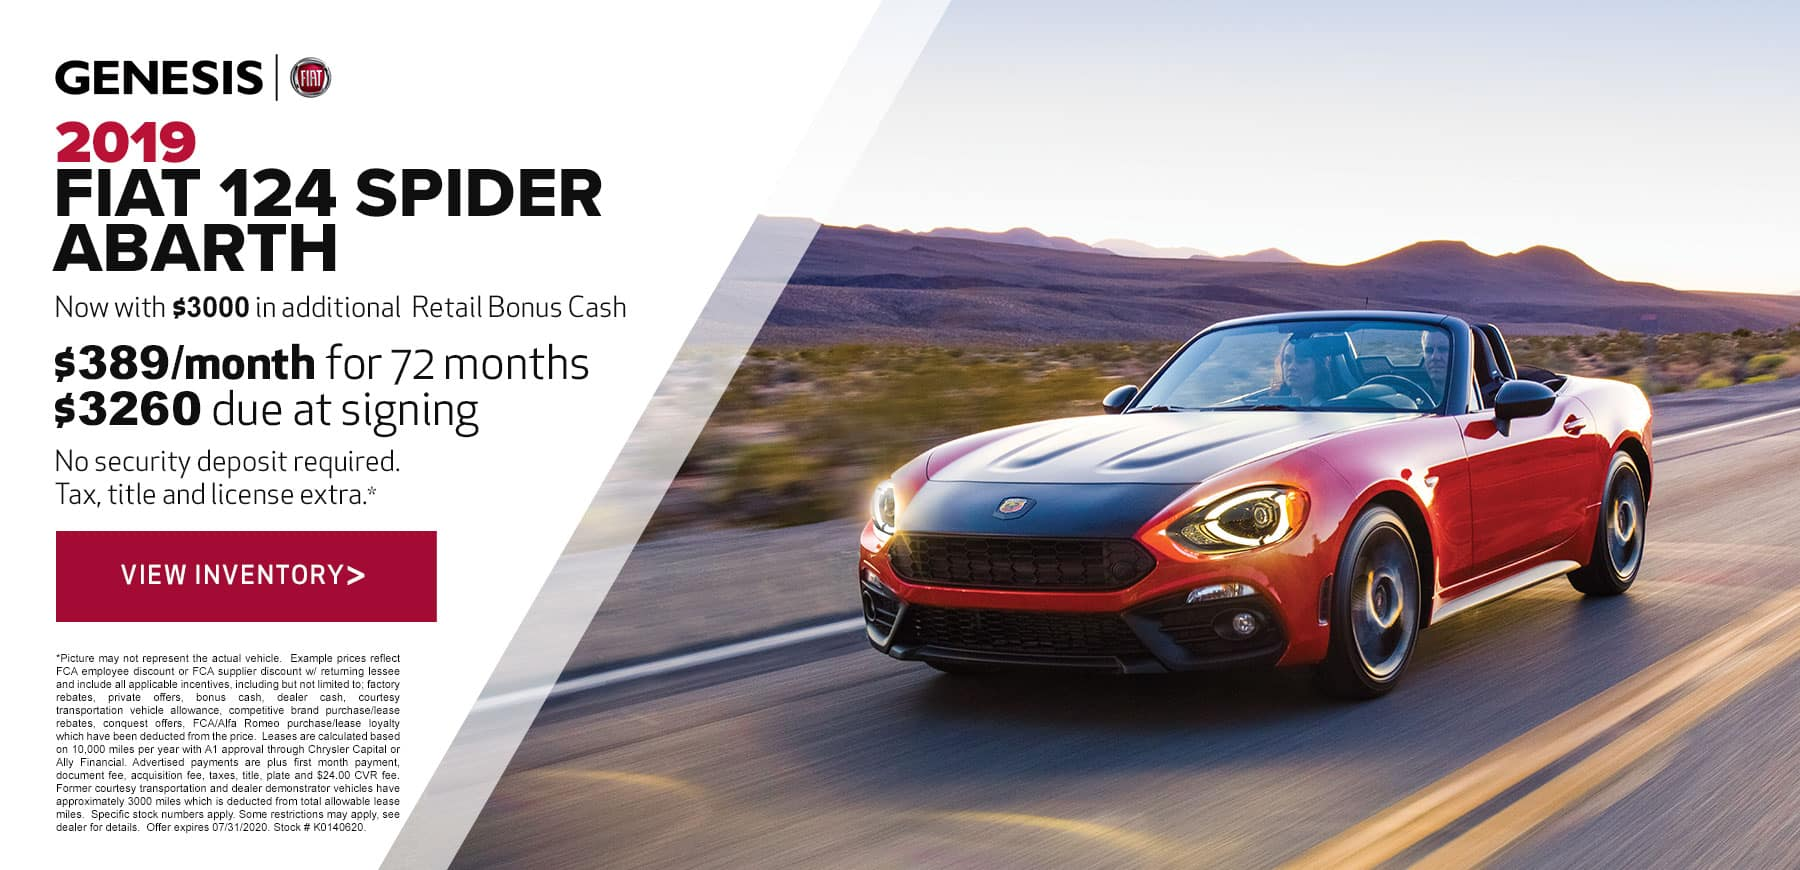 Genesis FIAT July 2020 124 Spider Retail Offer